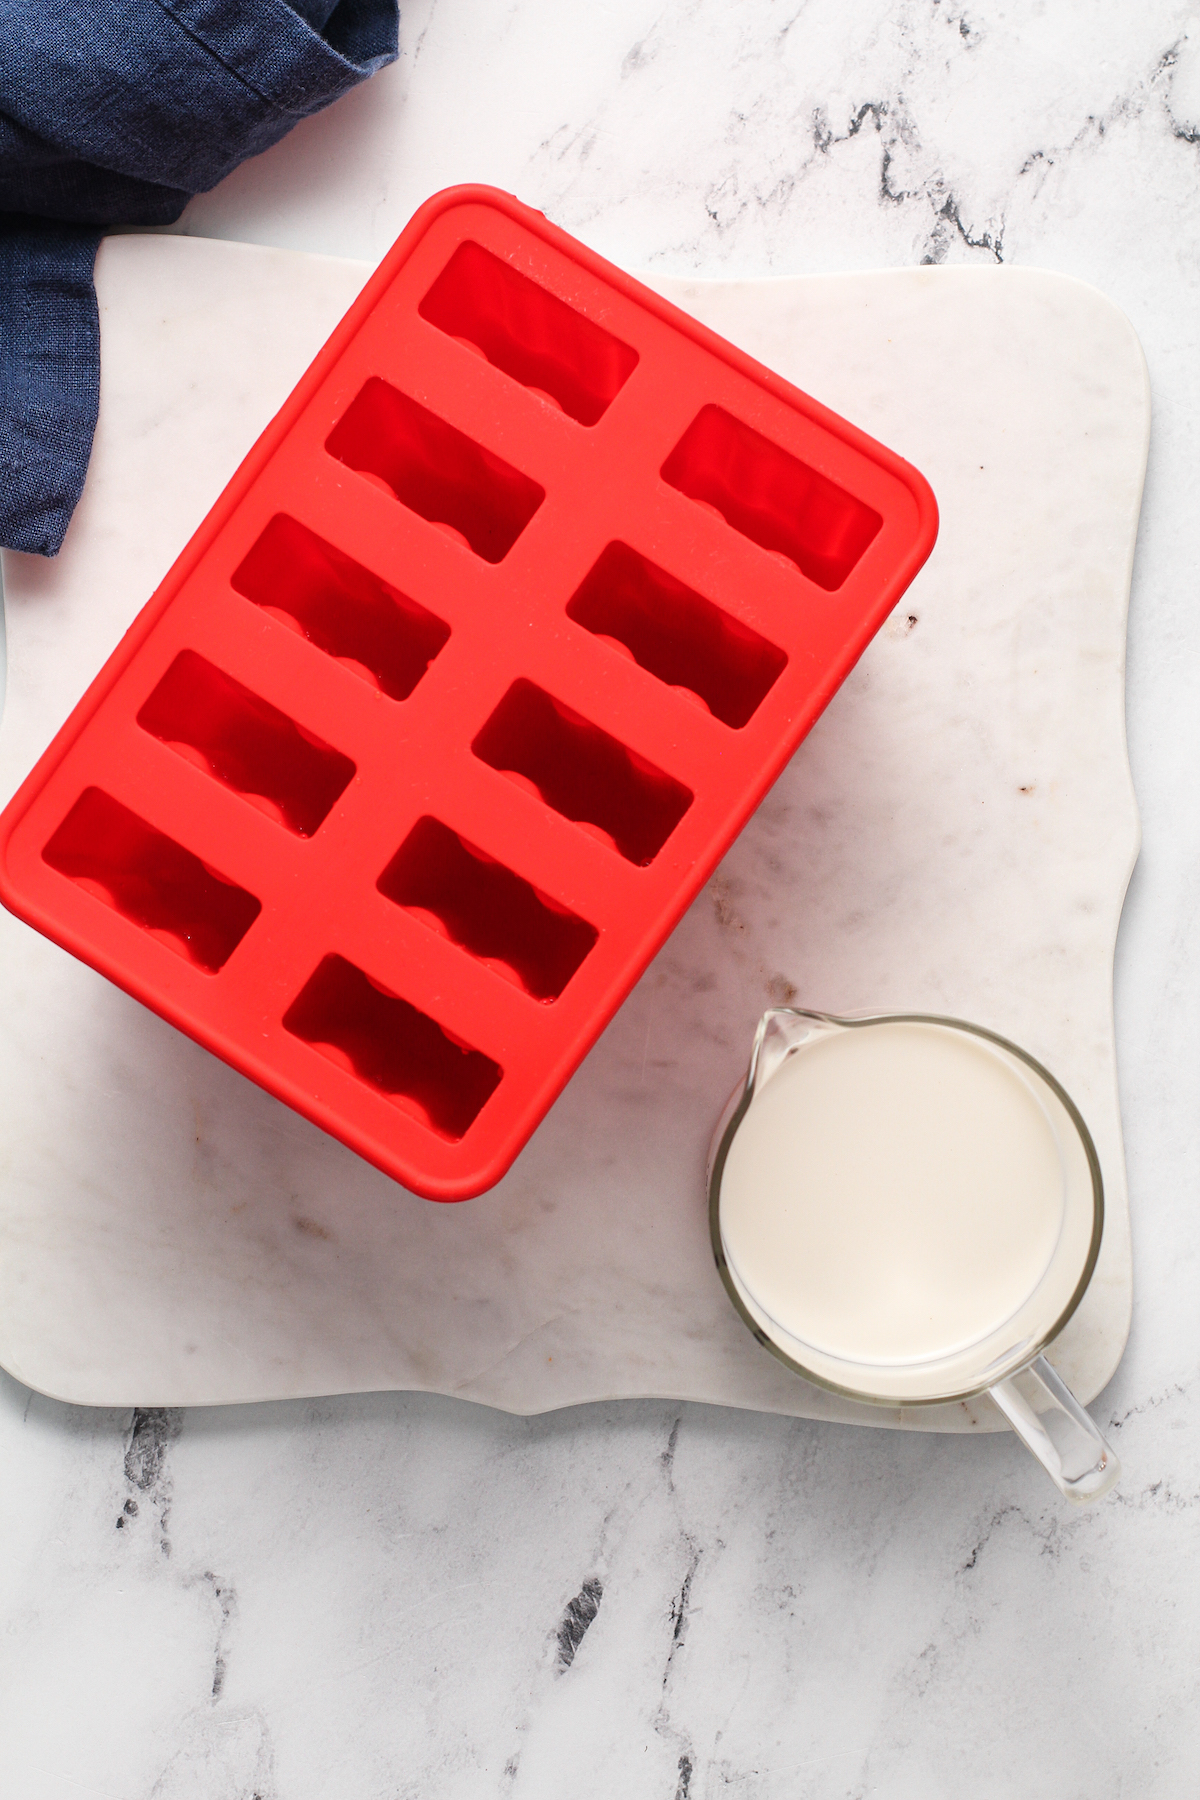 popsicle mold with oatmilk in a measuring cup